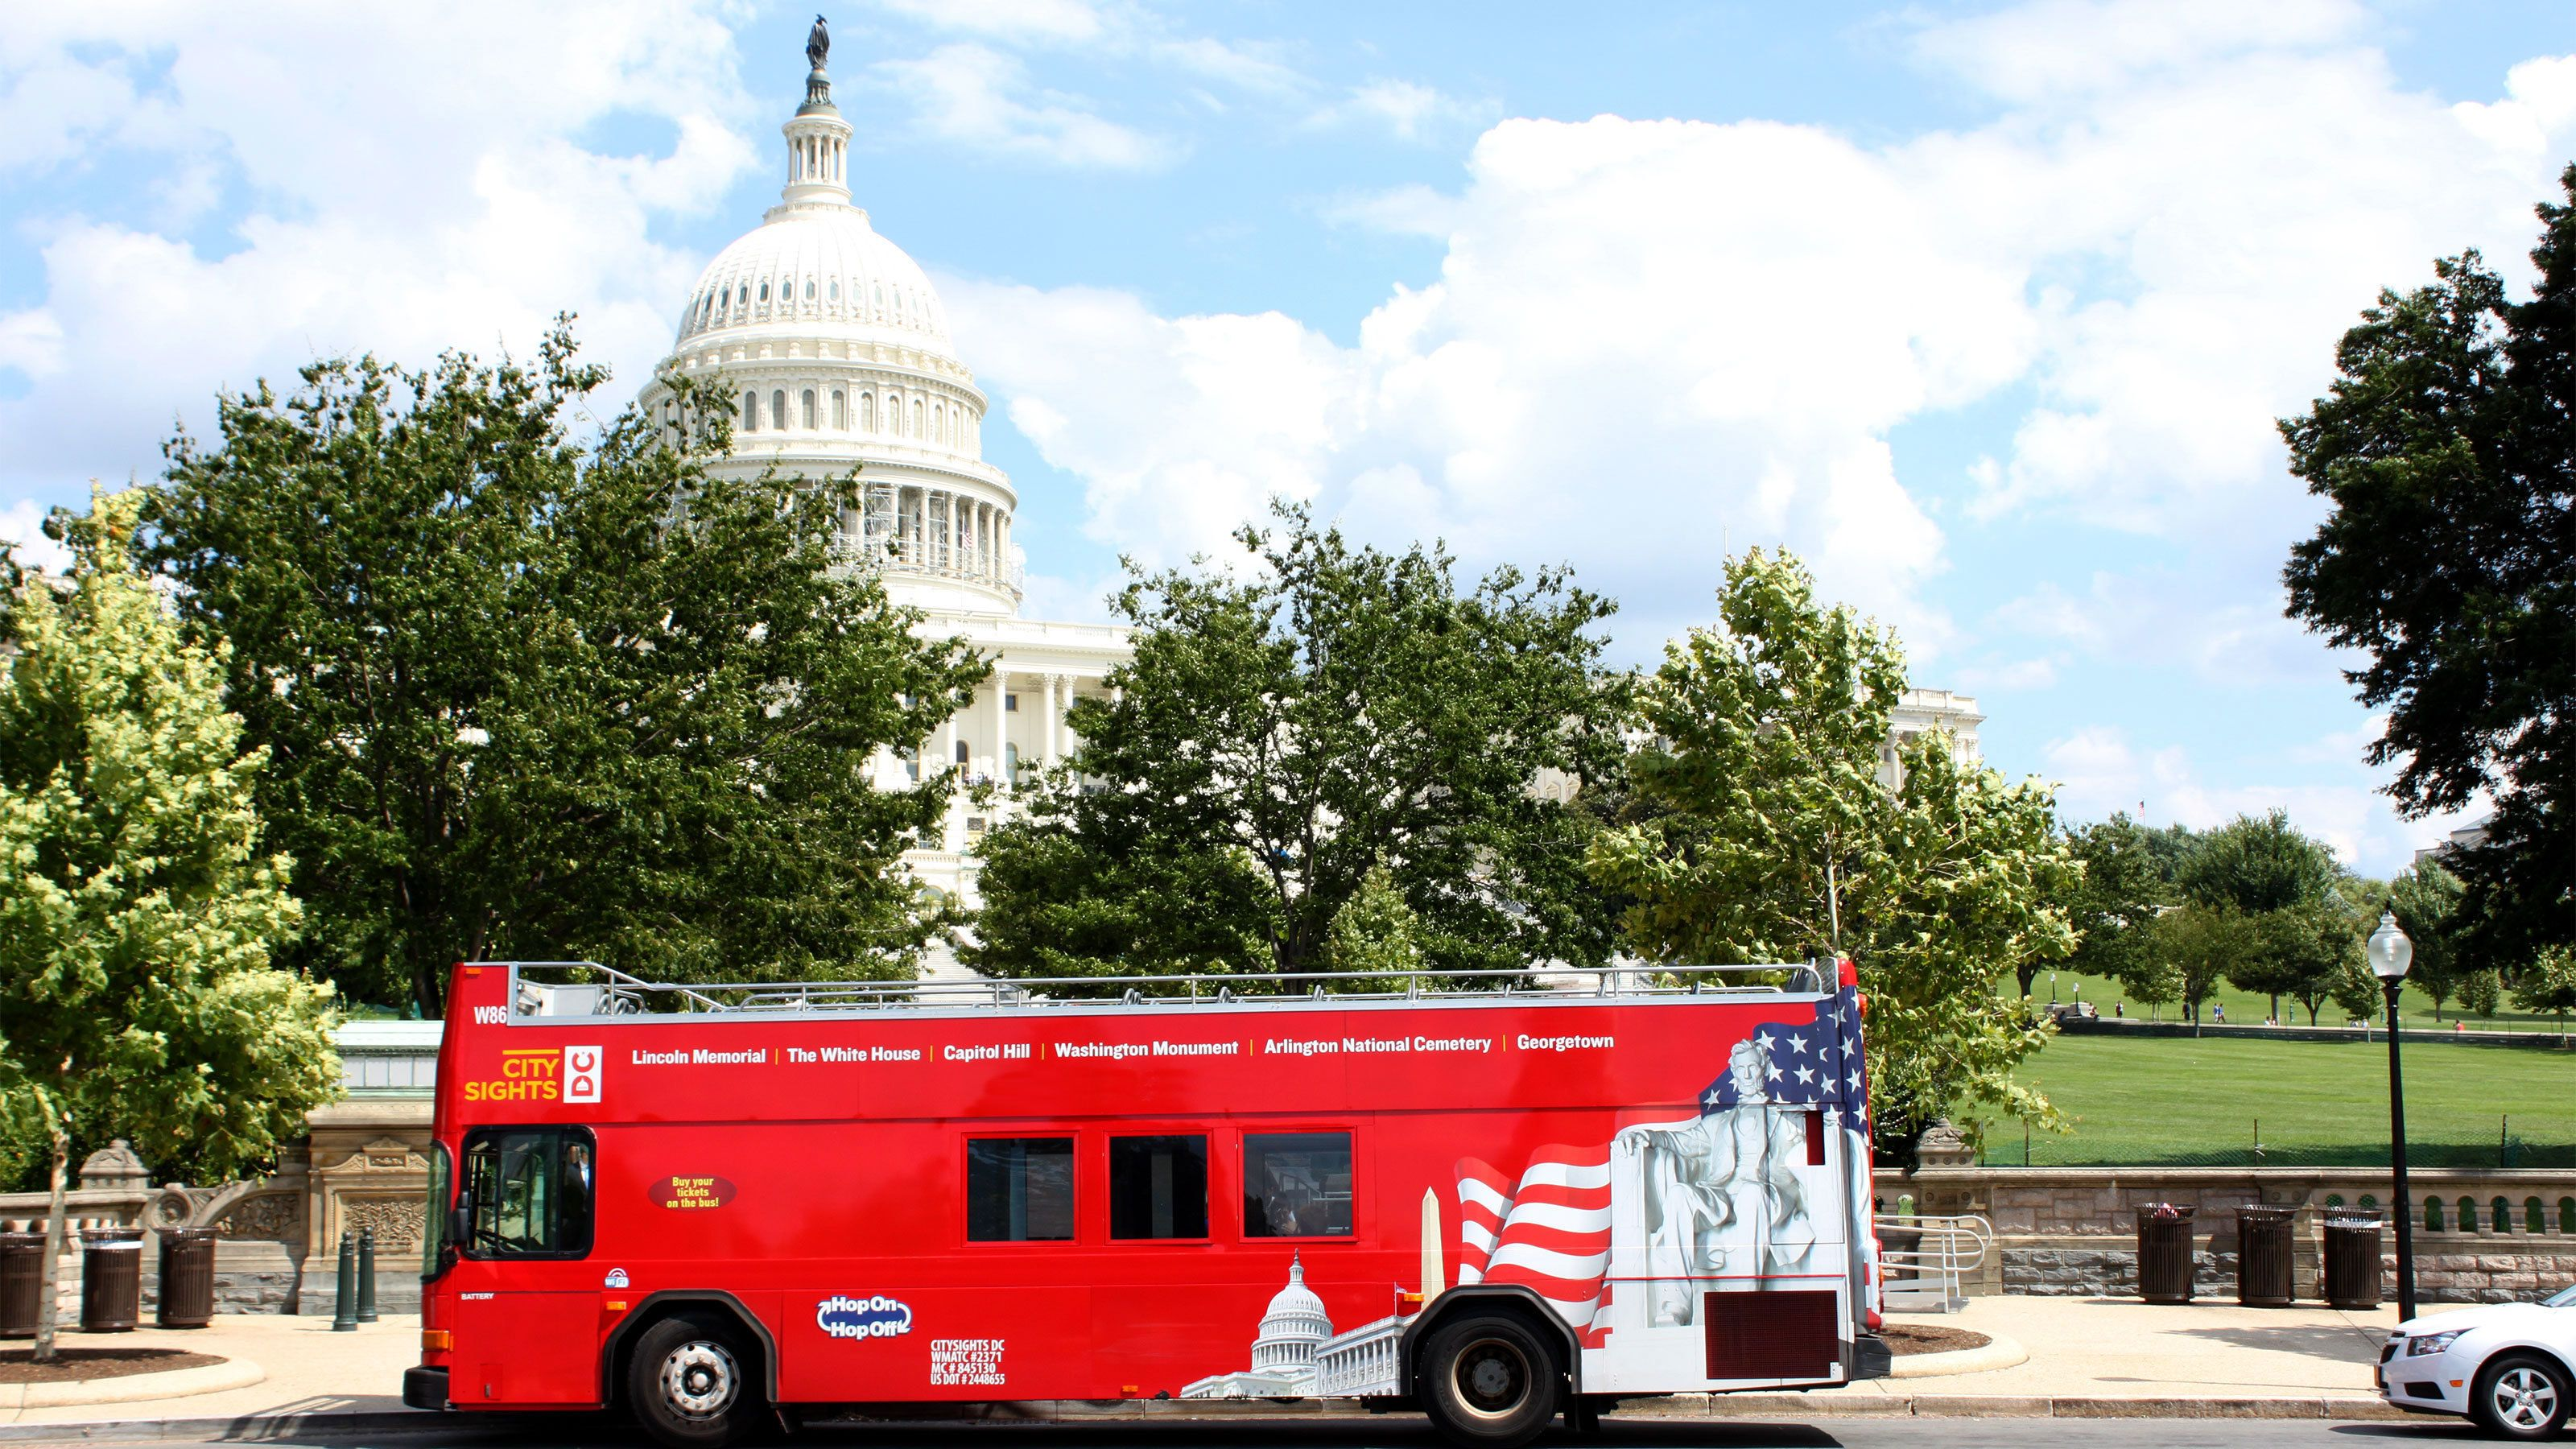 Hop-On Hop-Off bus parked in front of the Capitol Building in Washington DC